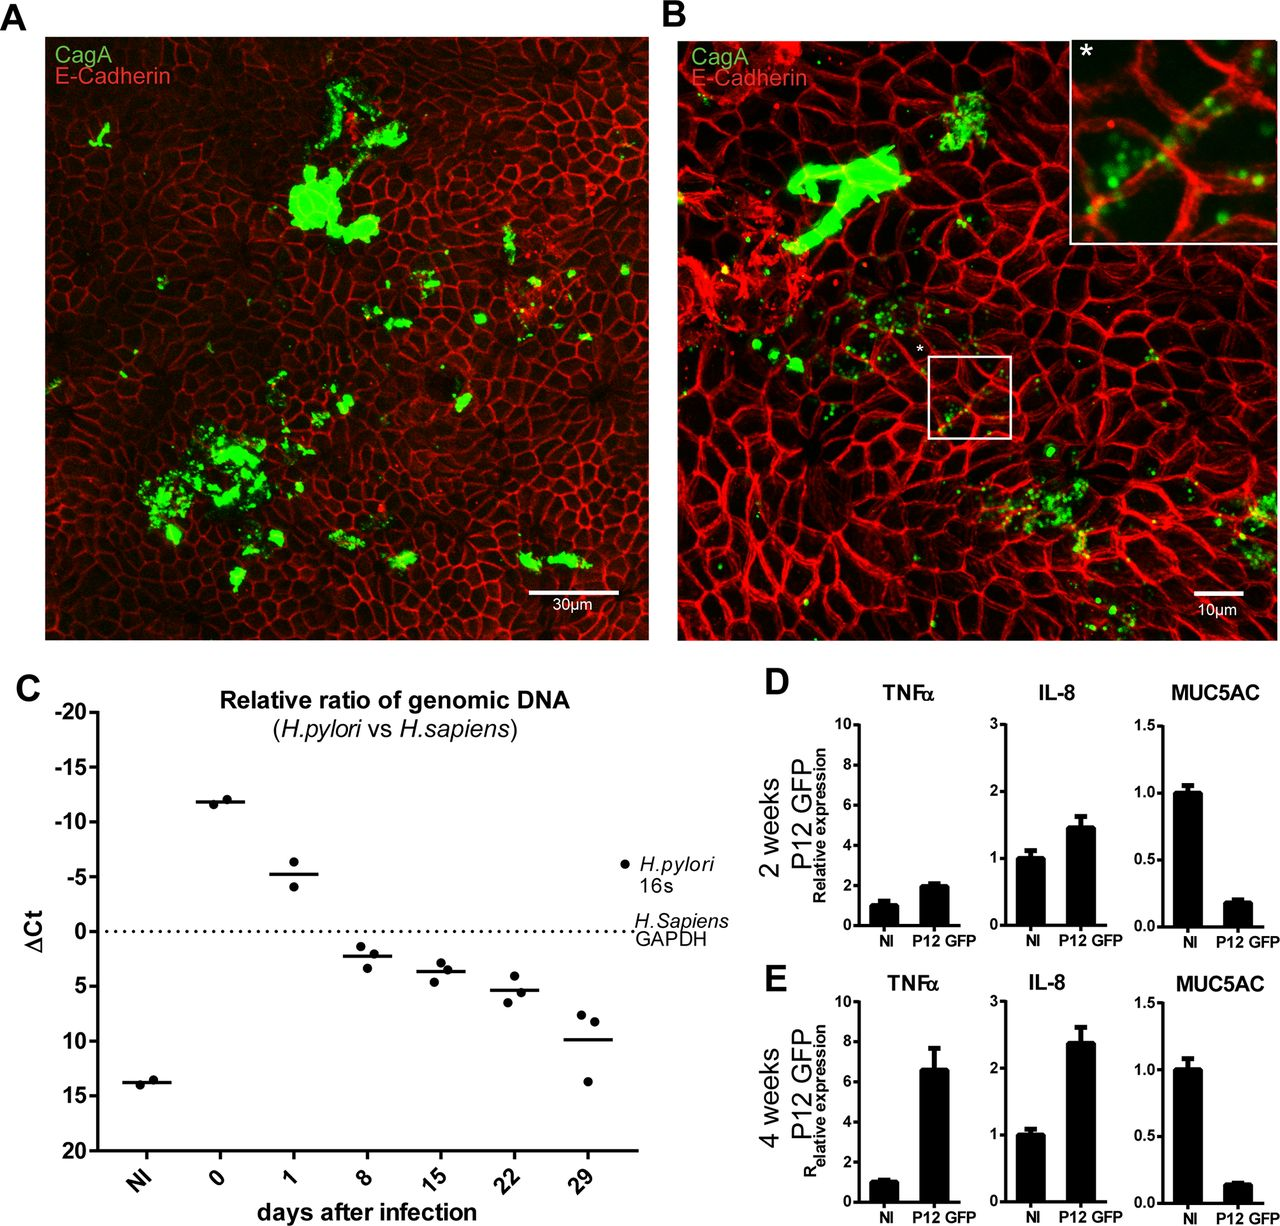 Polarised epithelial monolayers of the gastric mucosa reveal